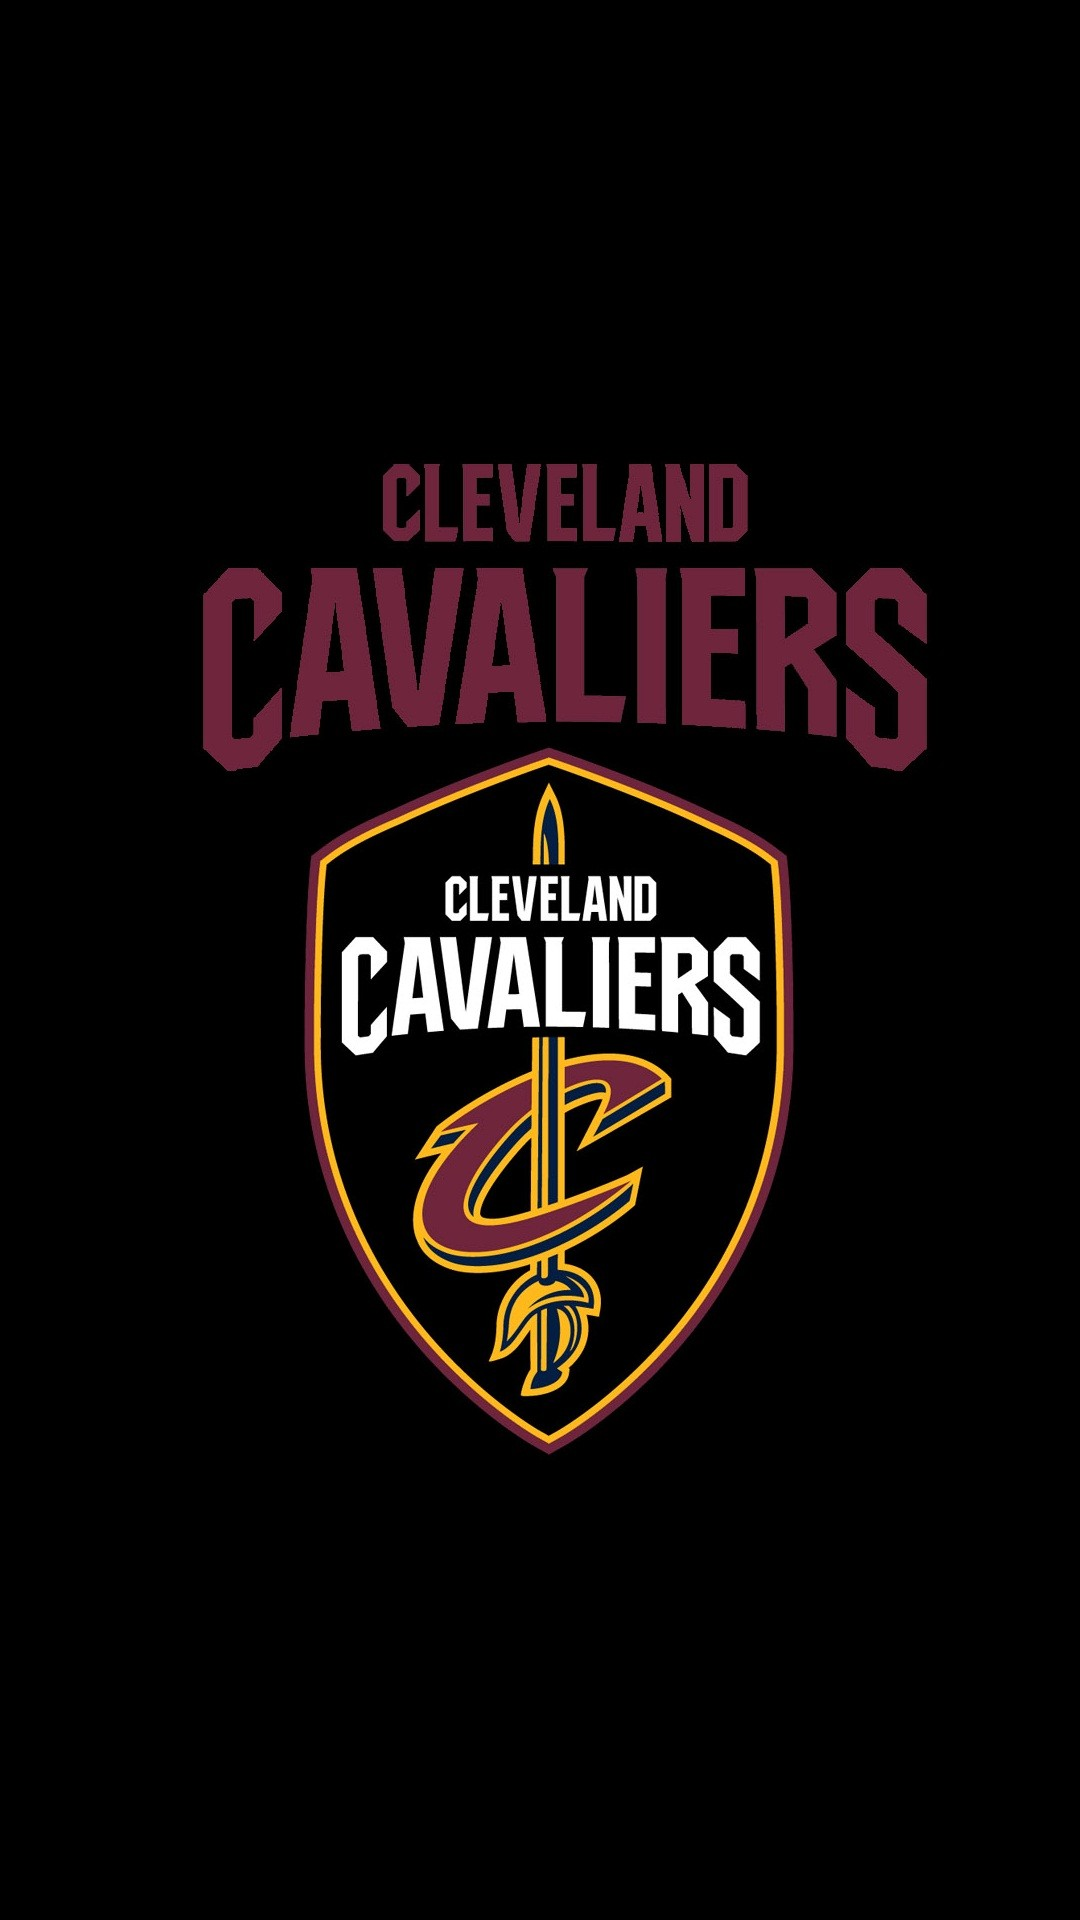 Cleveland Cavaliers Nba Wallpaper Iphone Hd - Cleveland Cavaliers Wallpaper For Iphone 2018 , HD Wallpaper & Backgrounds